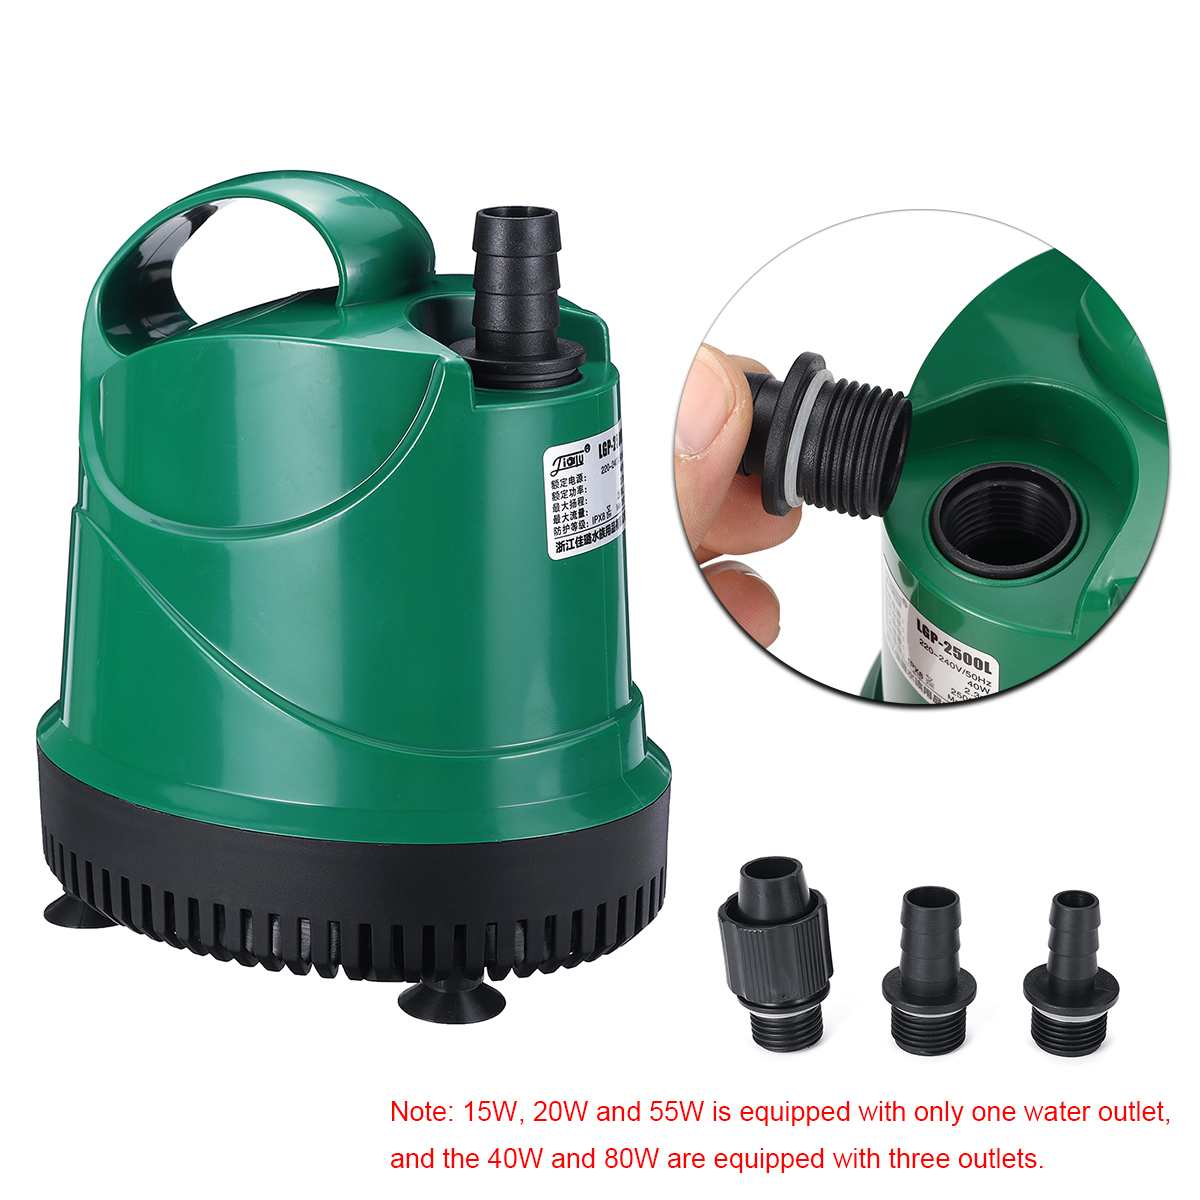 1000-3500L/H Quiet Submersible <font><b>Water</b></font> <font><b>Pump</b></font> Aquarium Fish Pond Tank Spout Marine ABS Case 220V-240V 50Hz Temperature Control image